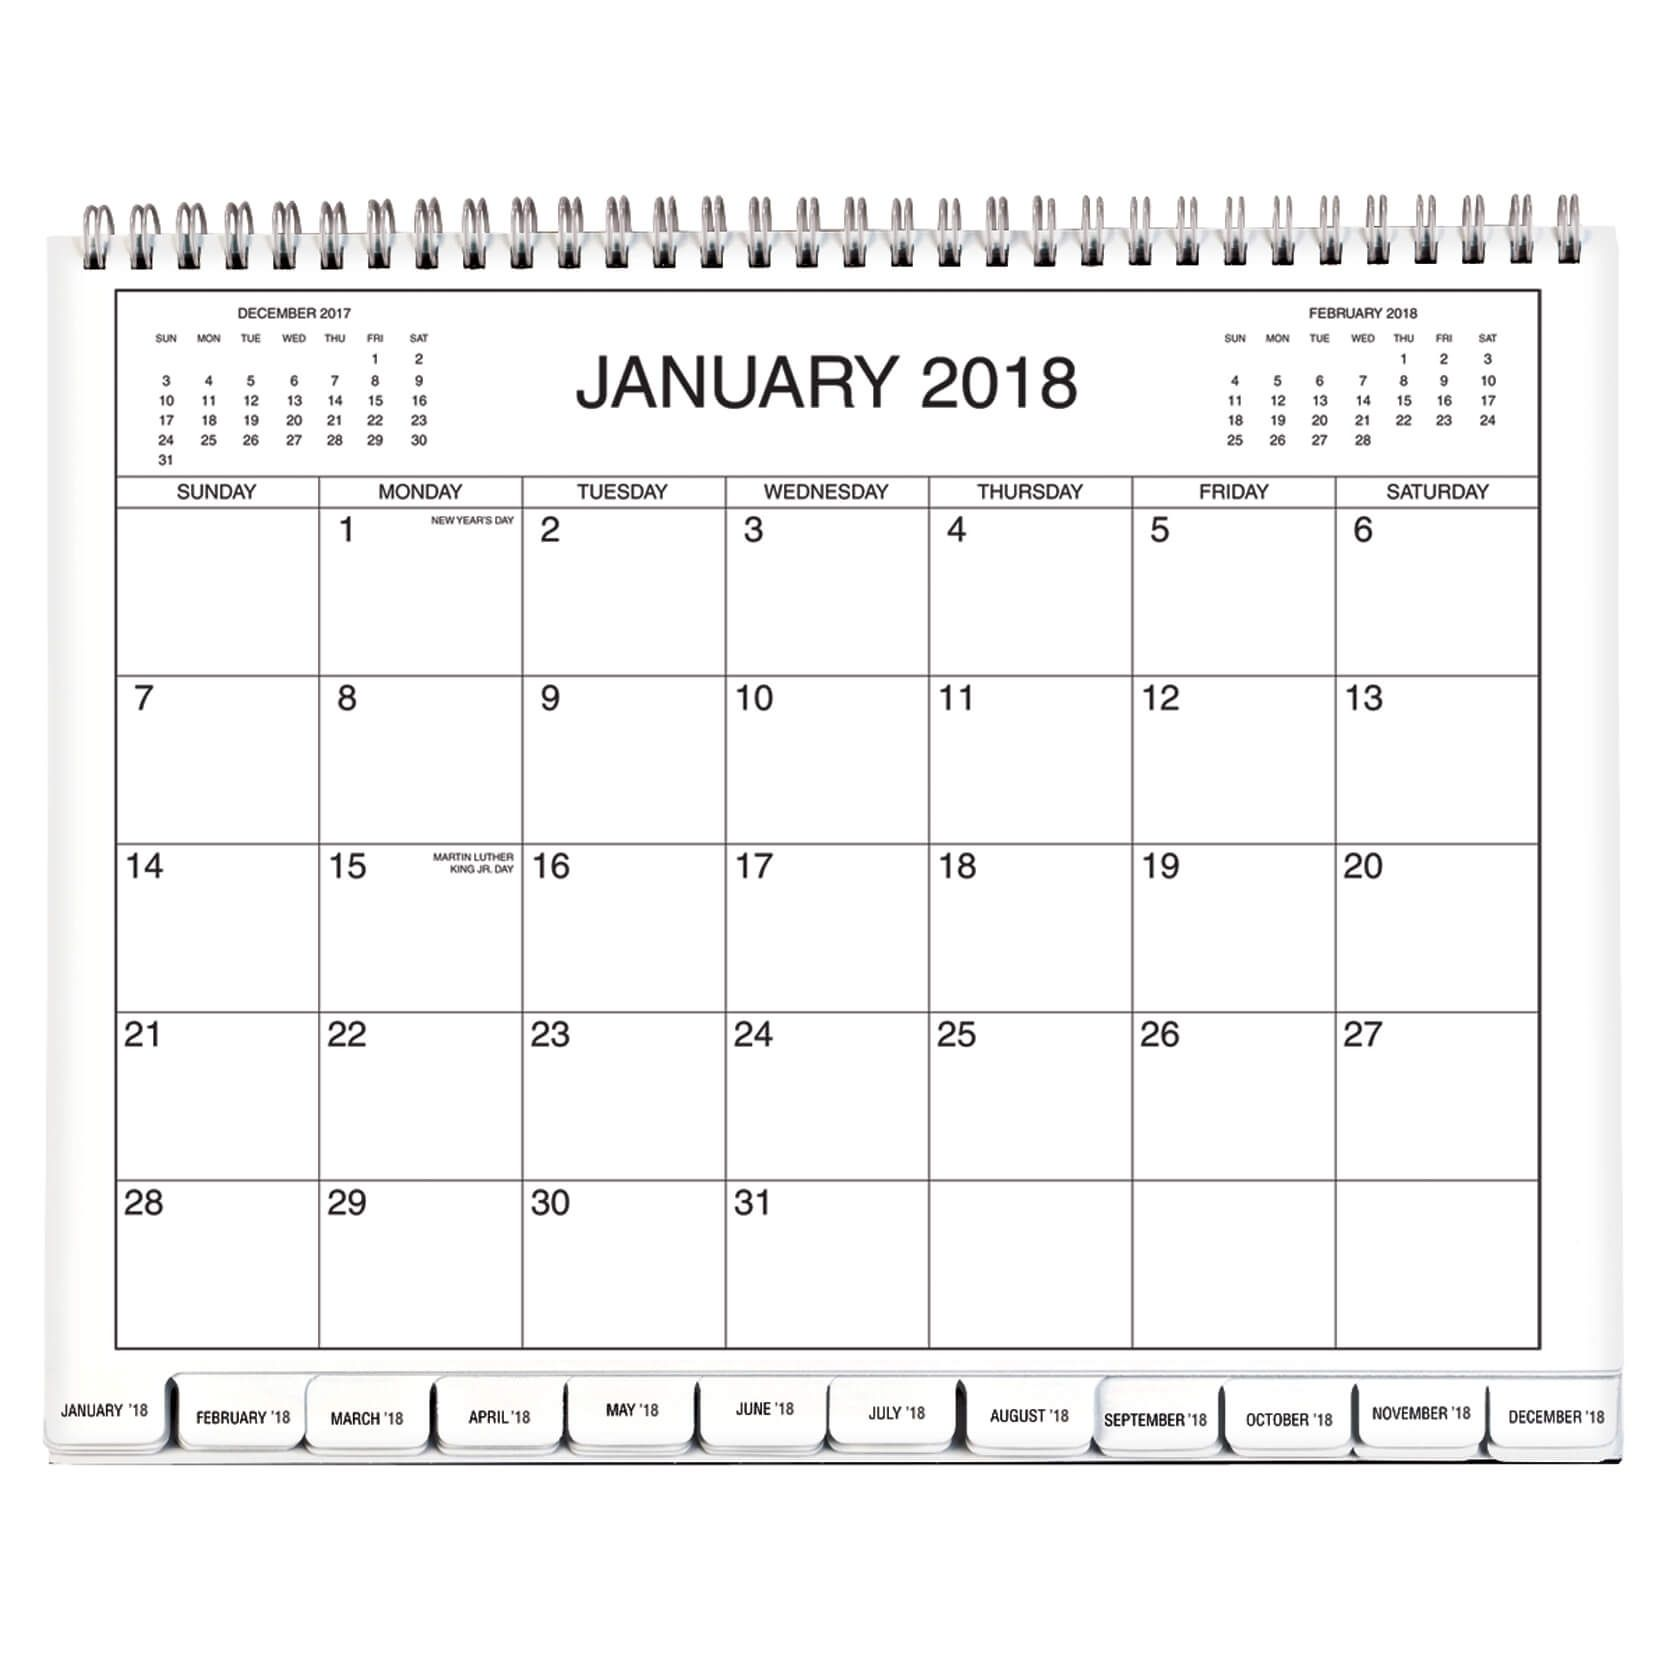 Extraordinary 3 Year Calendar Reference Printable 2020 2022 In 2020 Monthly Calendar Printable Calendar Calendar 2019 And 2020